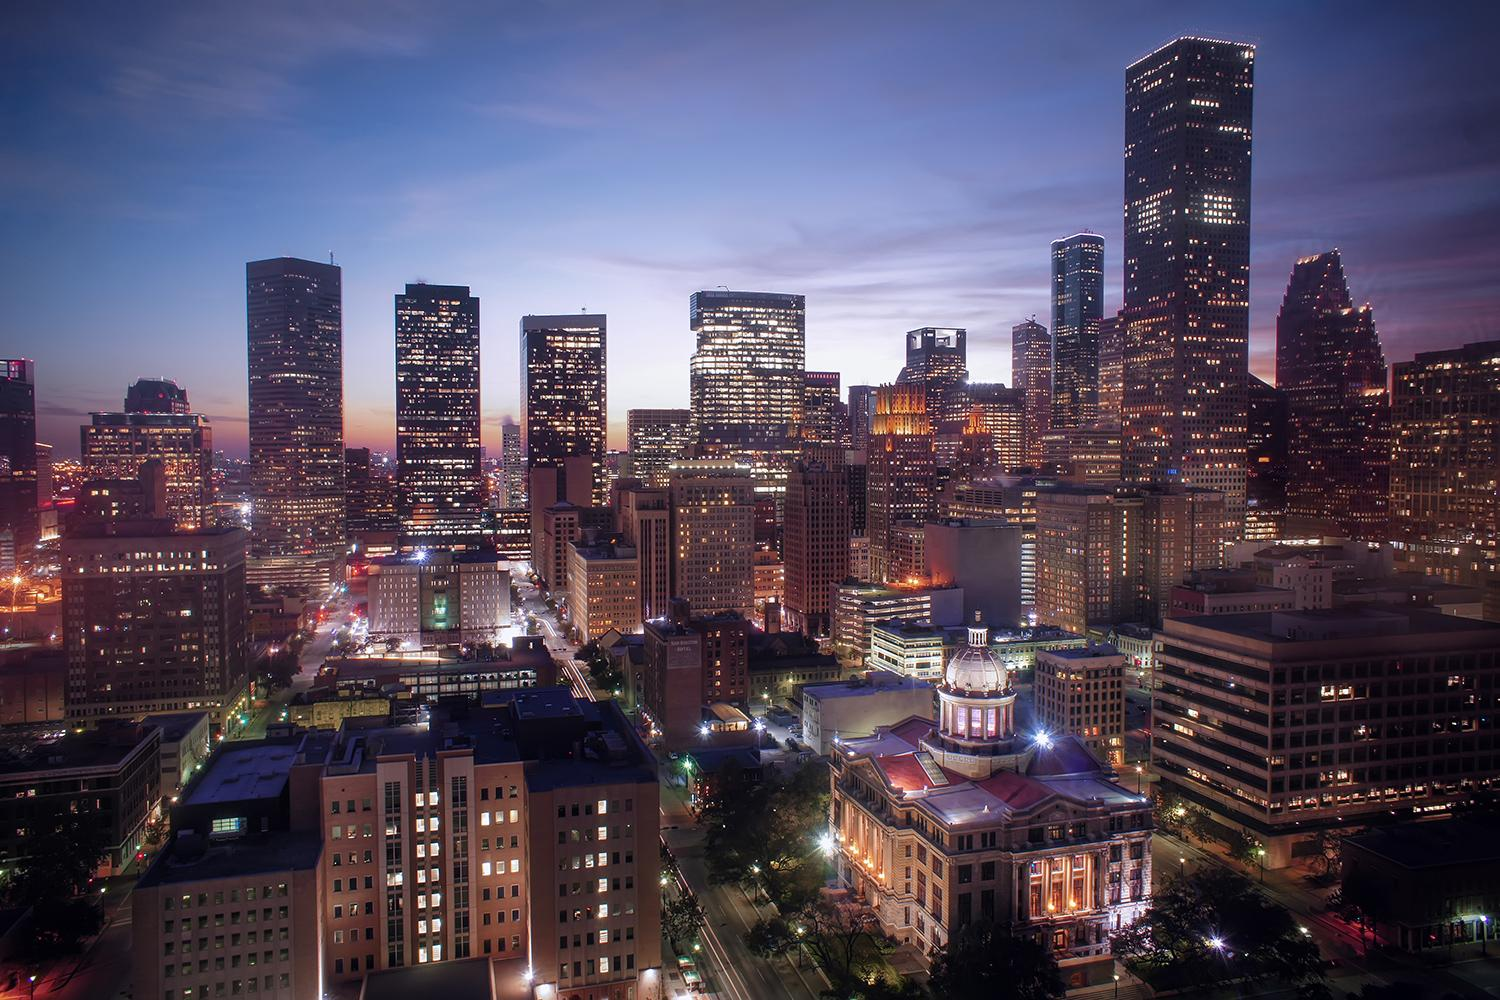 Tech Cities In Texas Are The Fastest Growing In The U.S. | Digital ...